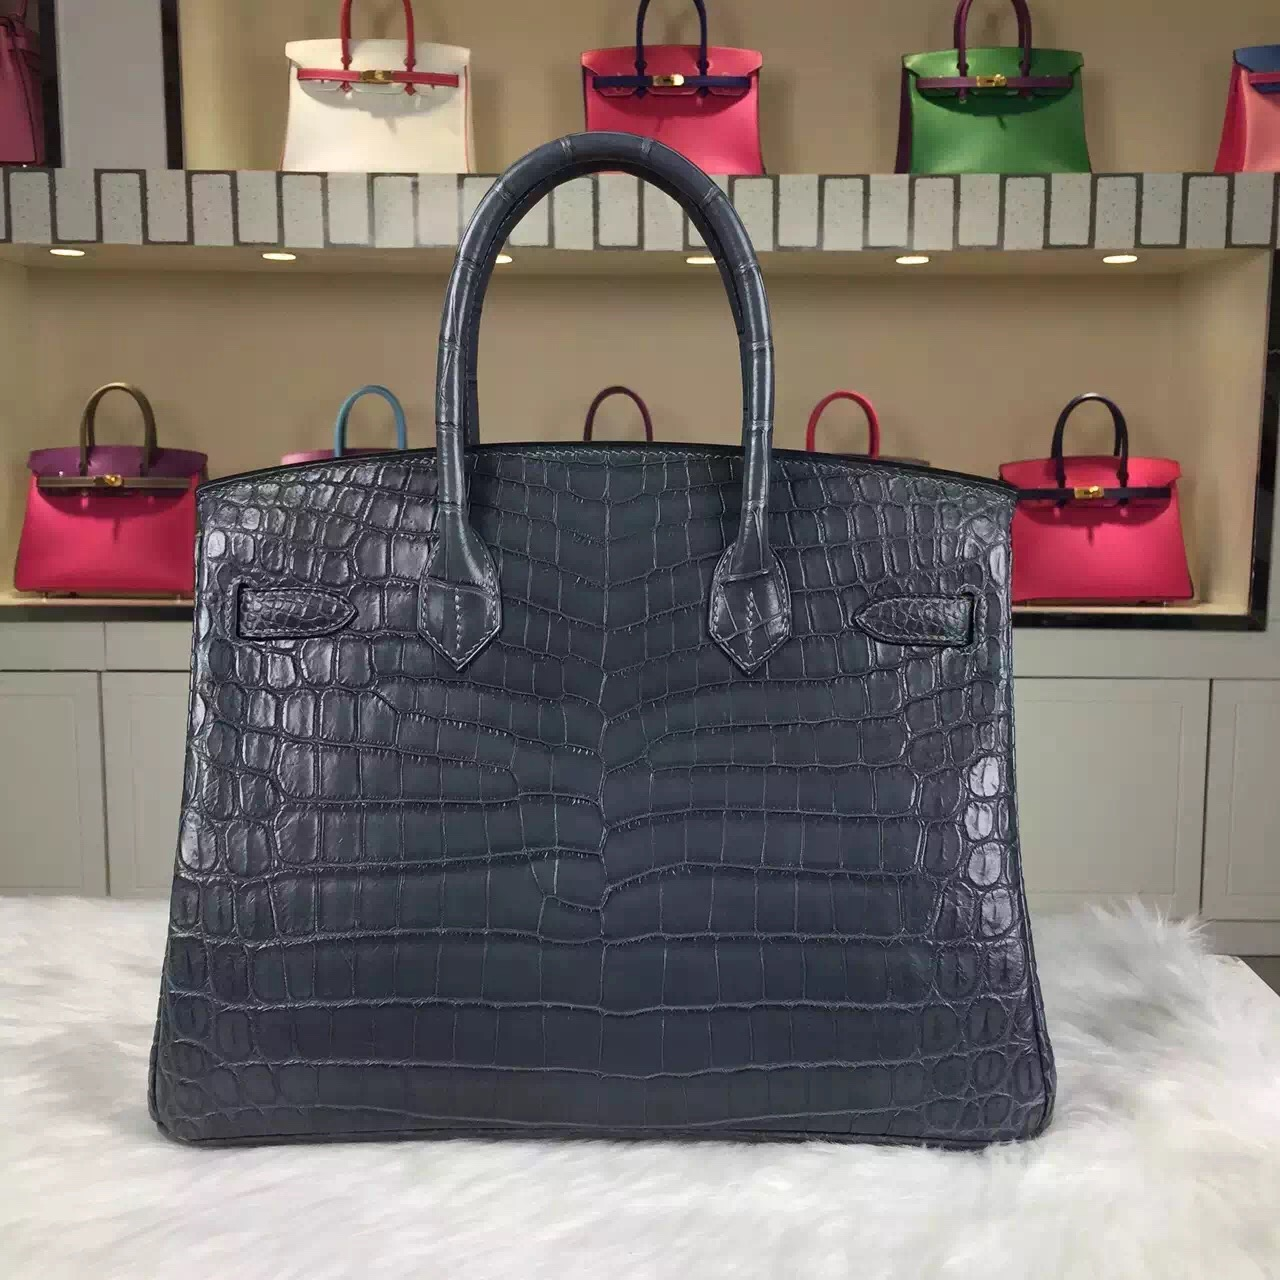 Custom-made Hermes Etain Grey Crocodile Matt Leather Birkin Bag30cm